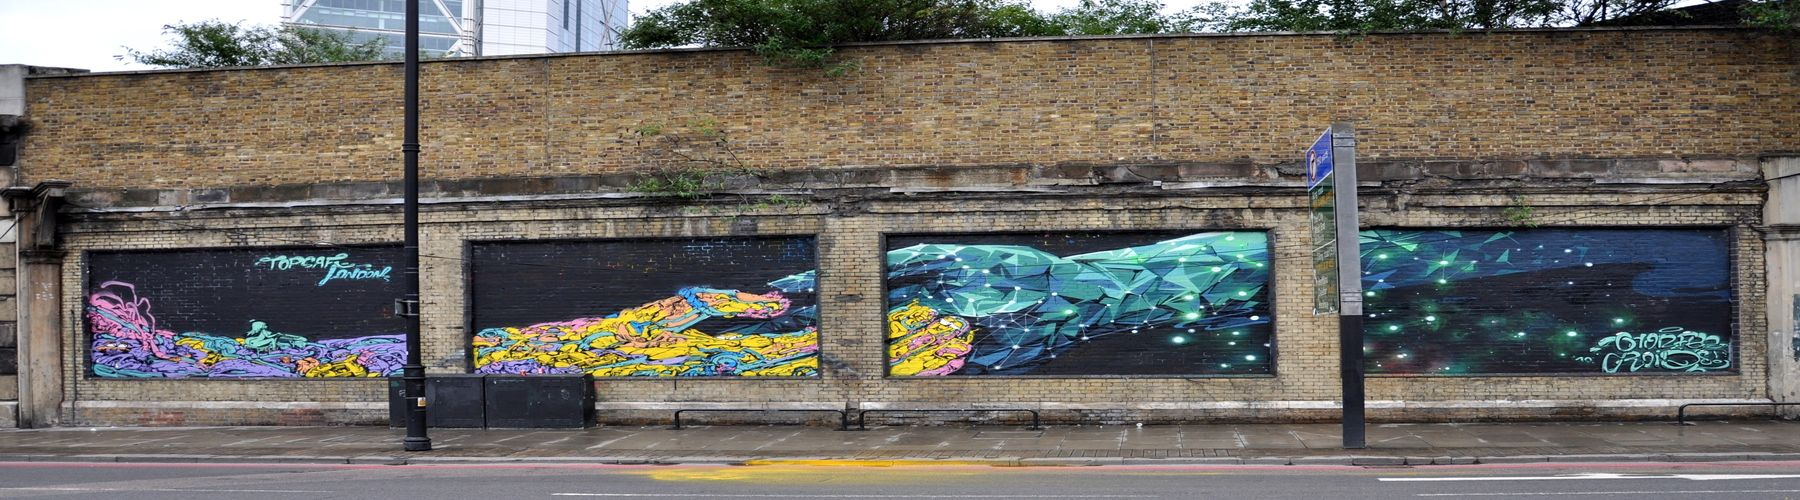 Artwork By Roid, horfe in London